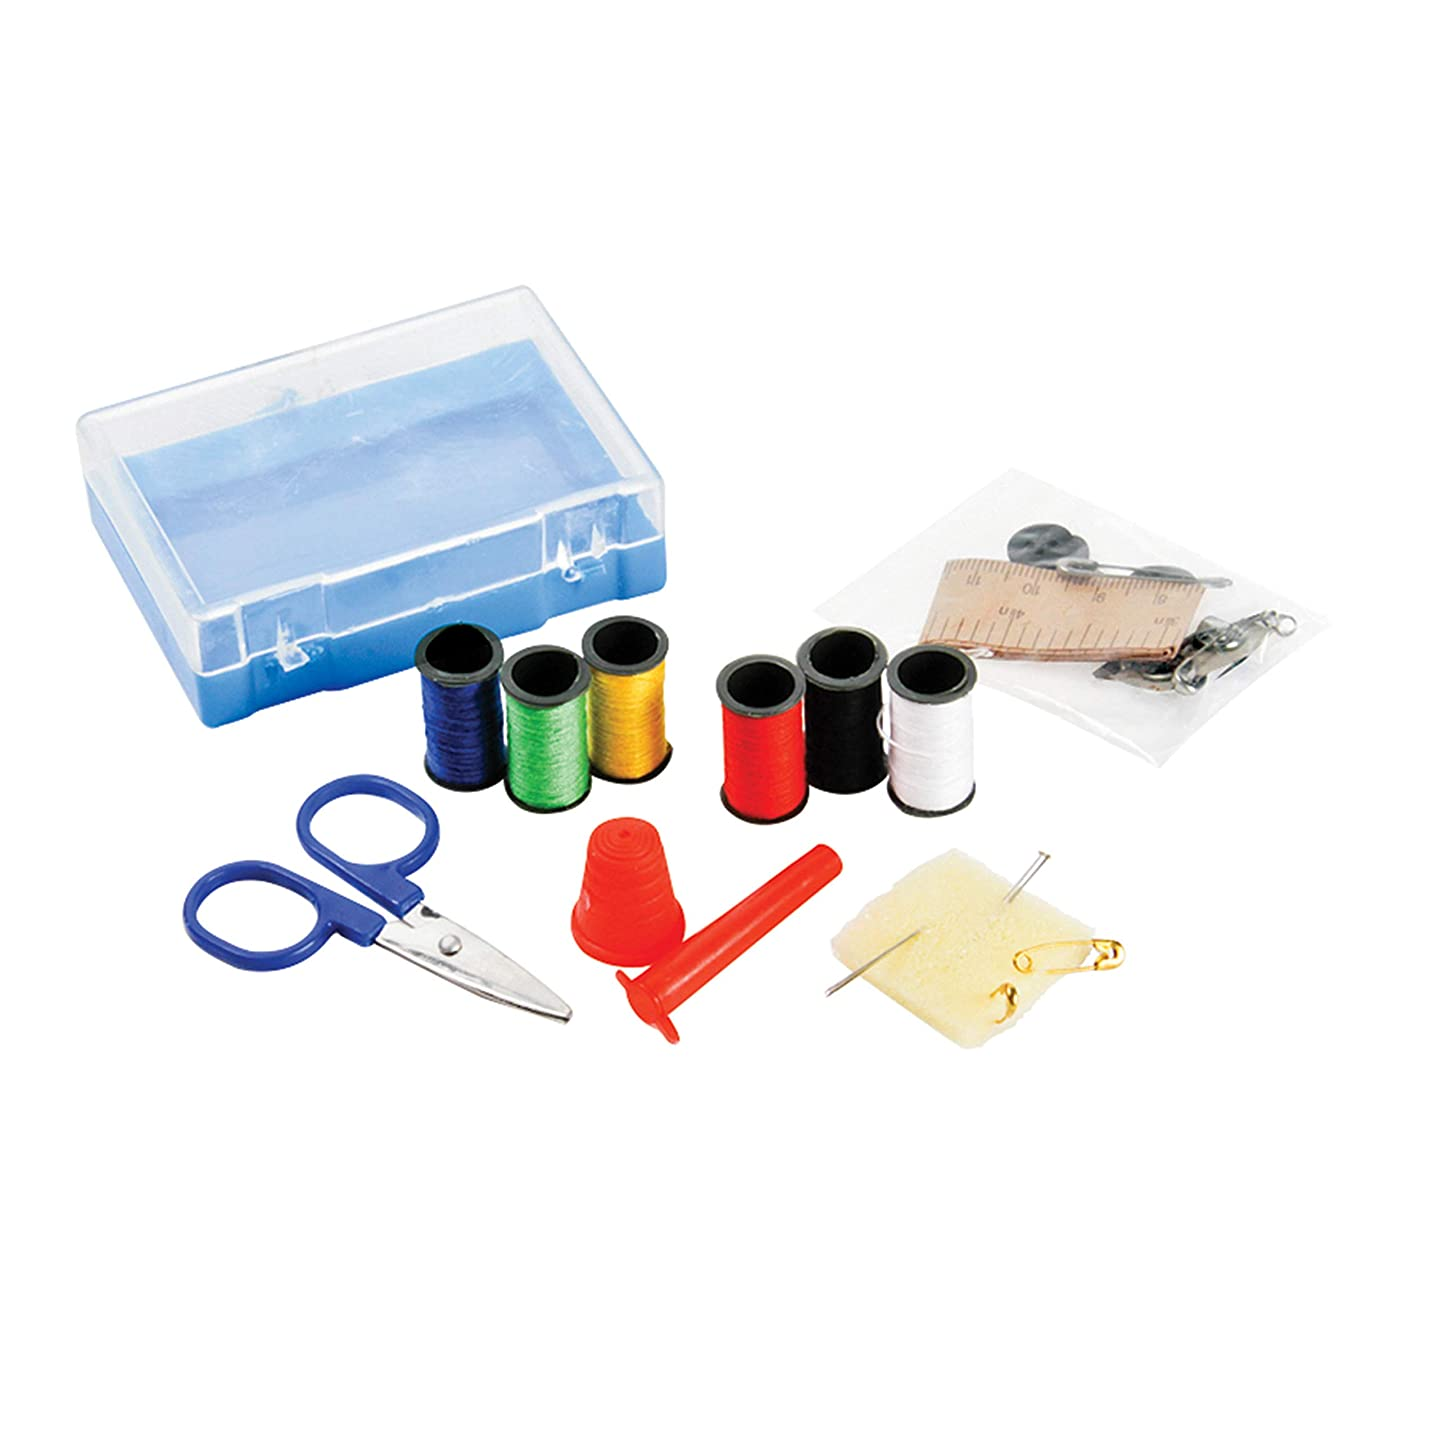 Camco Emergency Travel Sewing Kit - Excellent for Quick Repairs, Compact Size Fits in Most Bags and Totes, Great for On The Go  (51053)